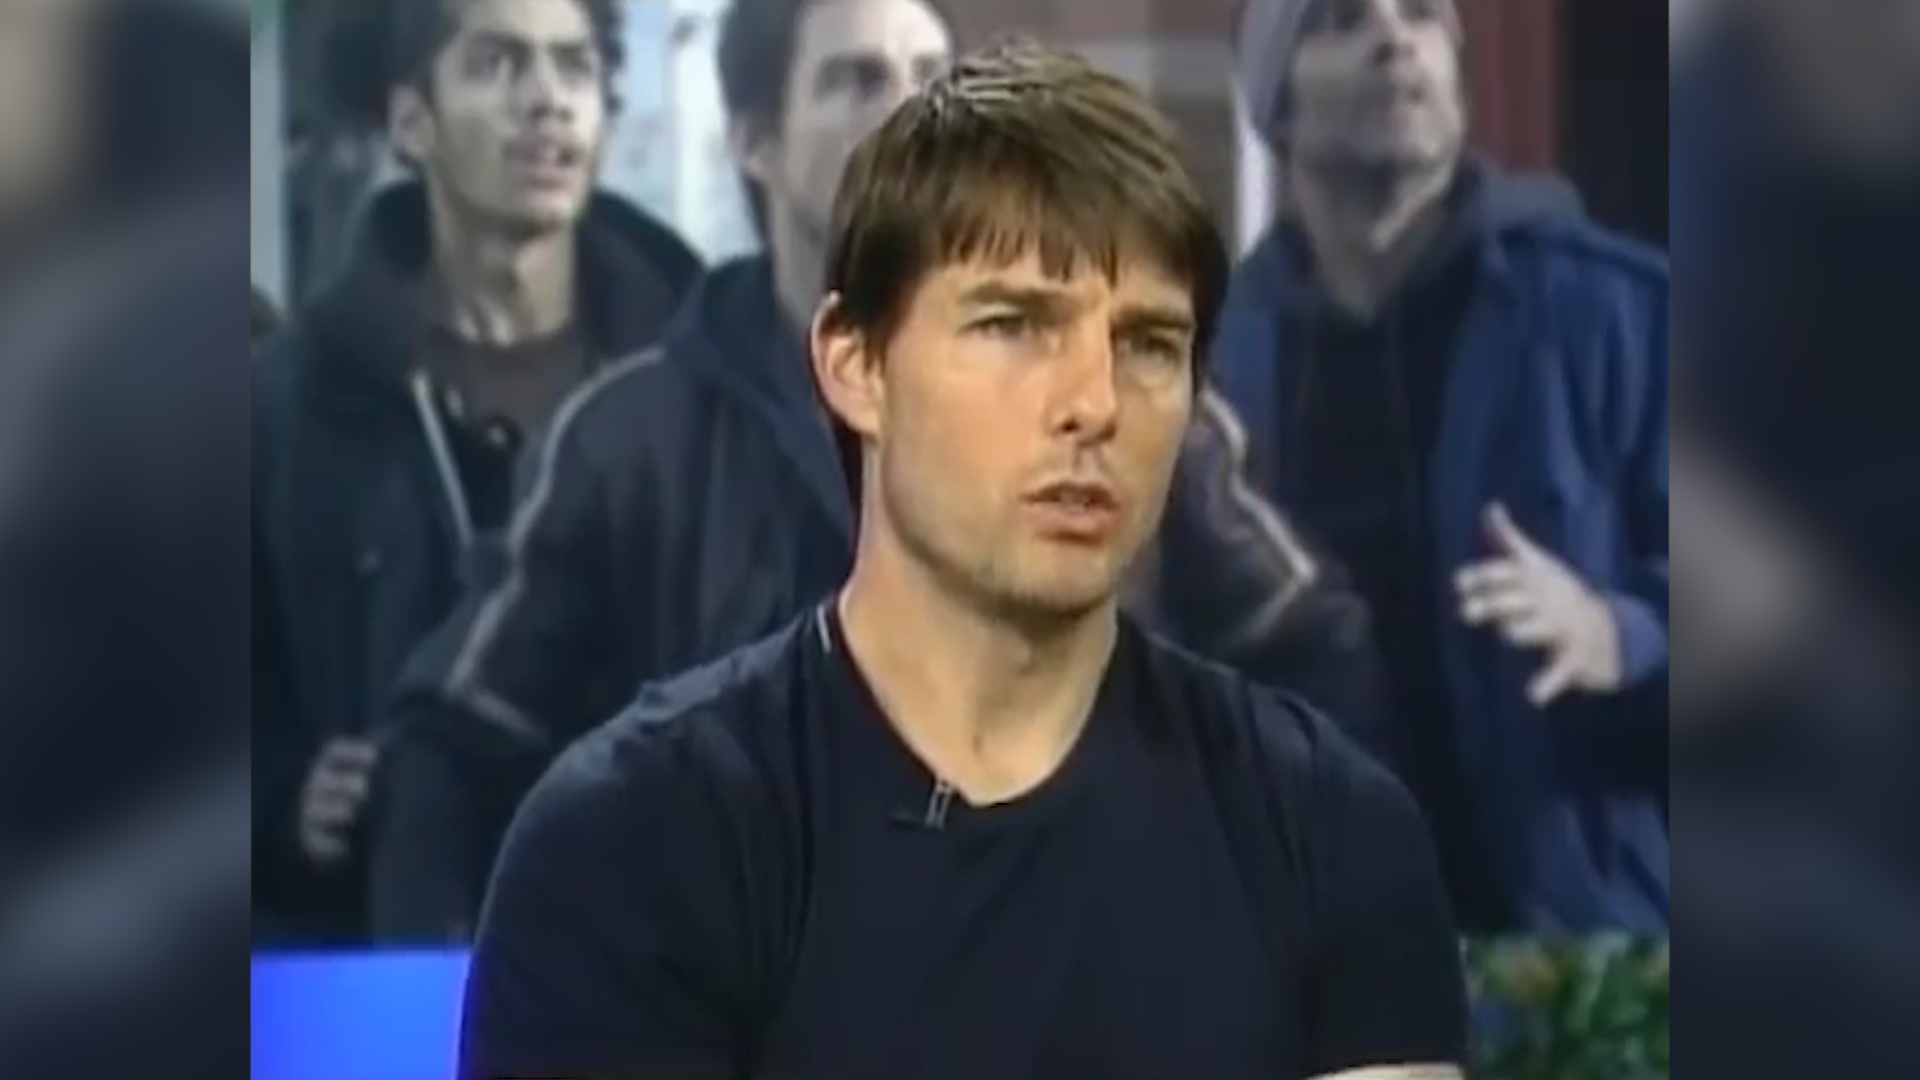 Tom Cruise talks about Scientology as a religion